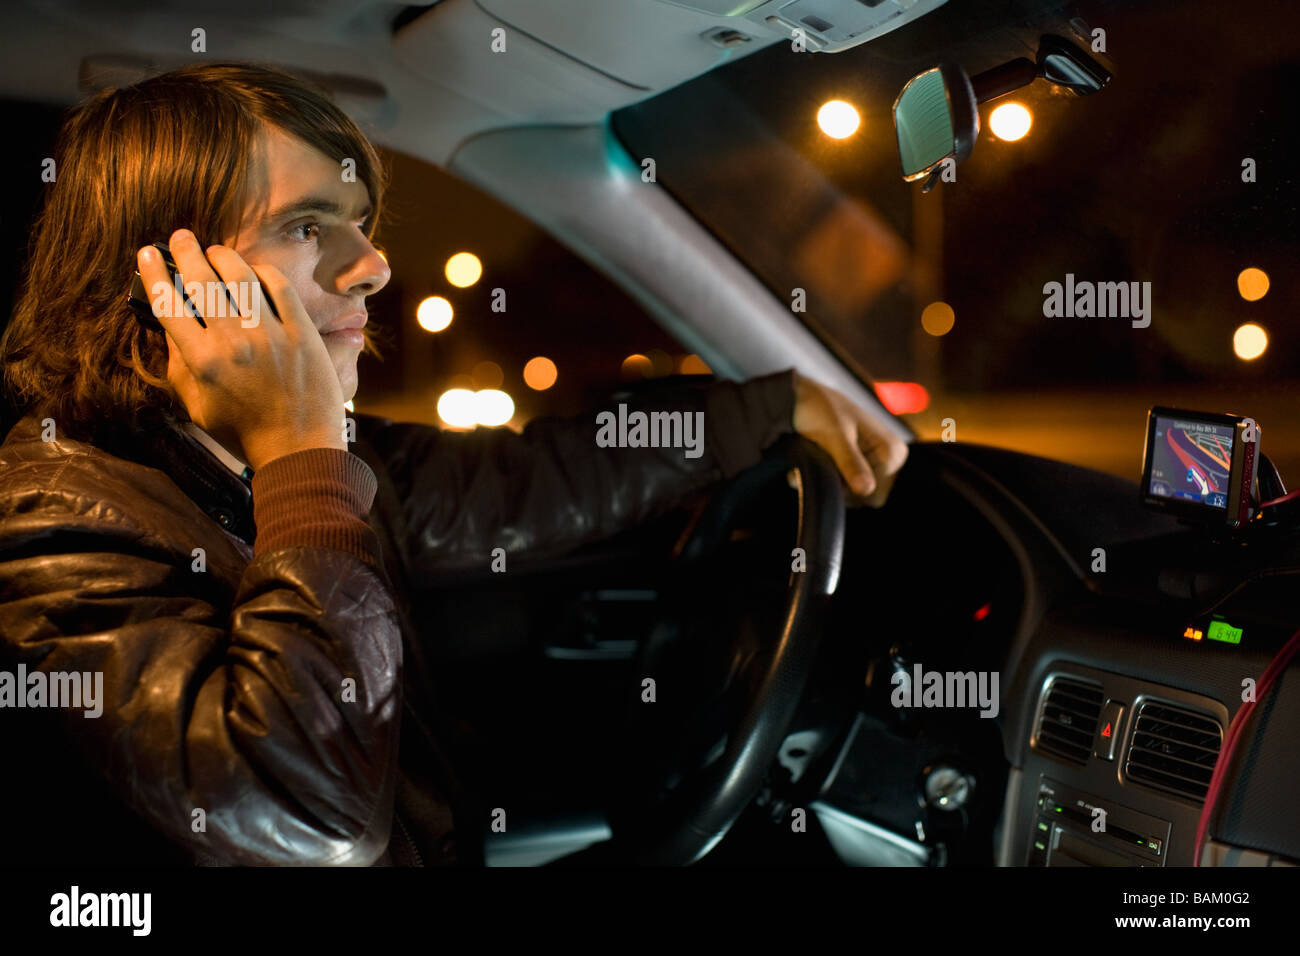 Man on cellphone in car - Stock Image